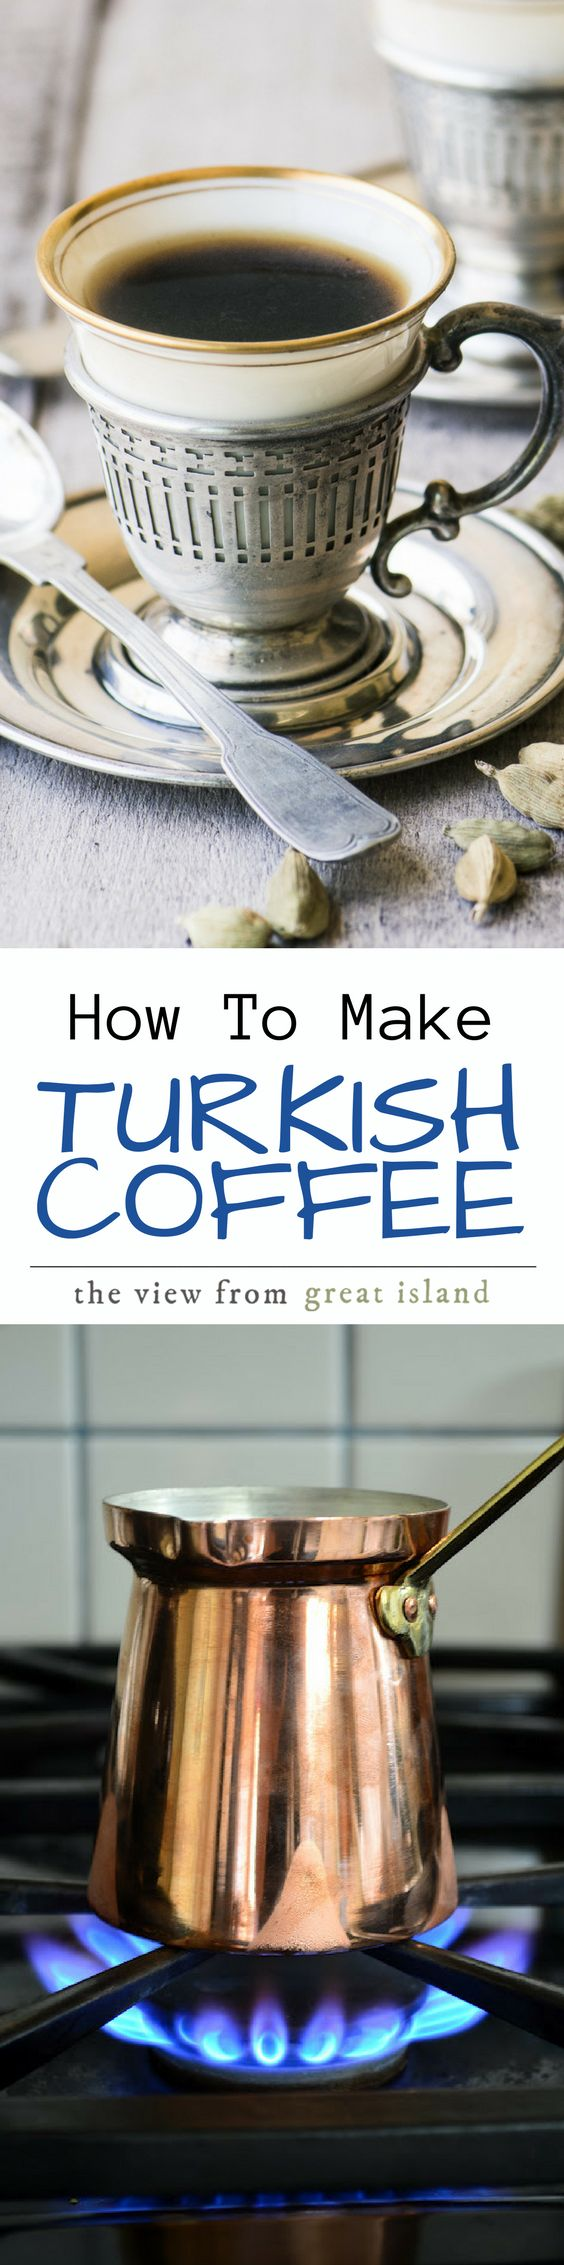 How to Make Turkish Coffee ~ the perfect cup of coffee might not be from Starbucks after all ~ this sensuous brew is full-bodied, fragrant, and utterly delicious.